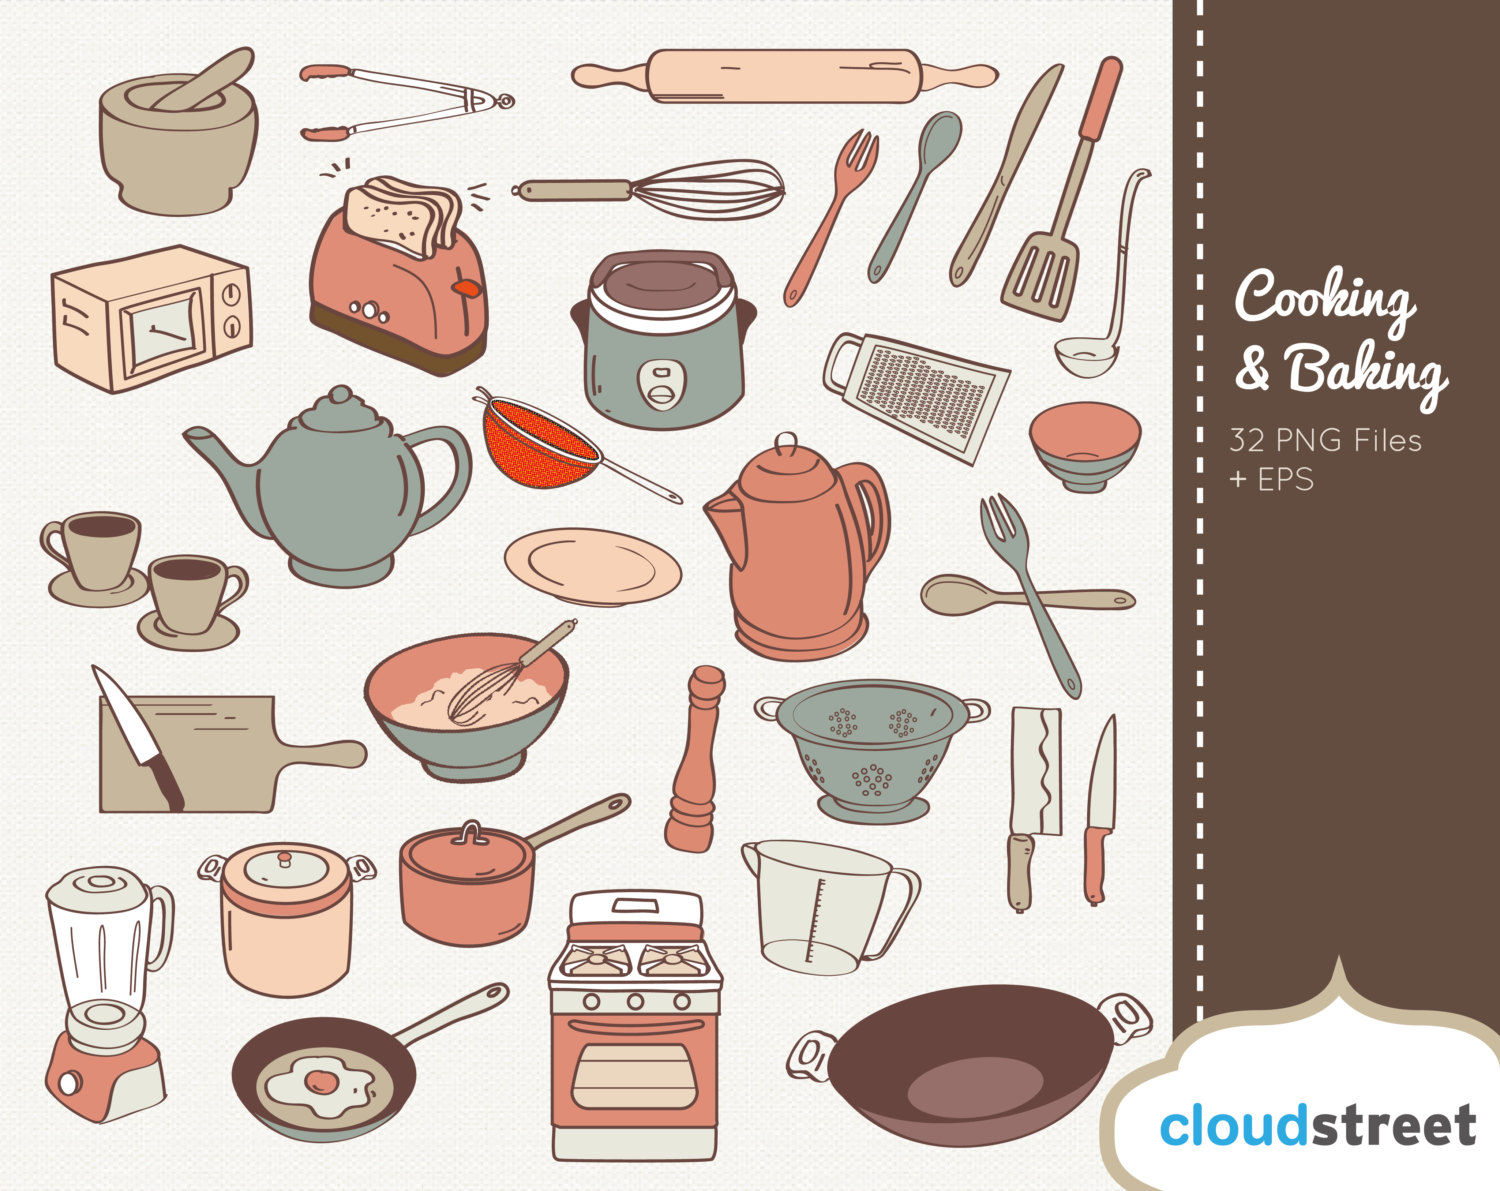 Baking clipart cooking utensil For and graphics for commercial